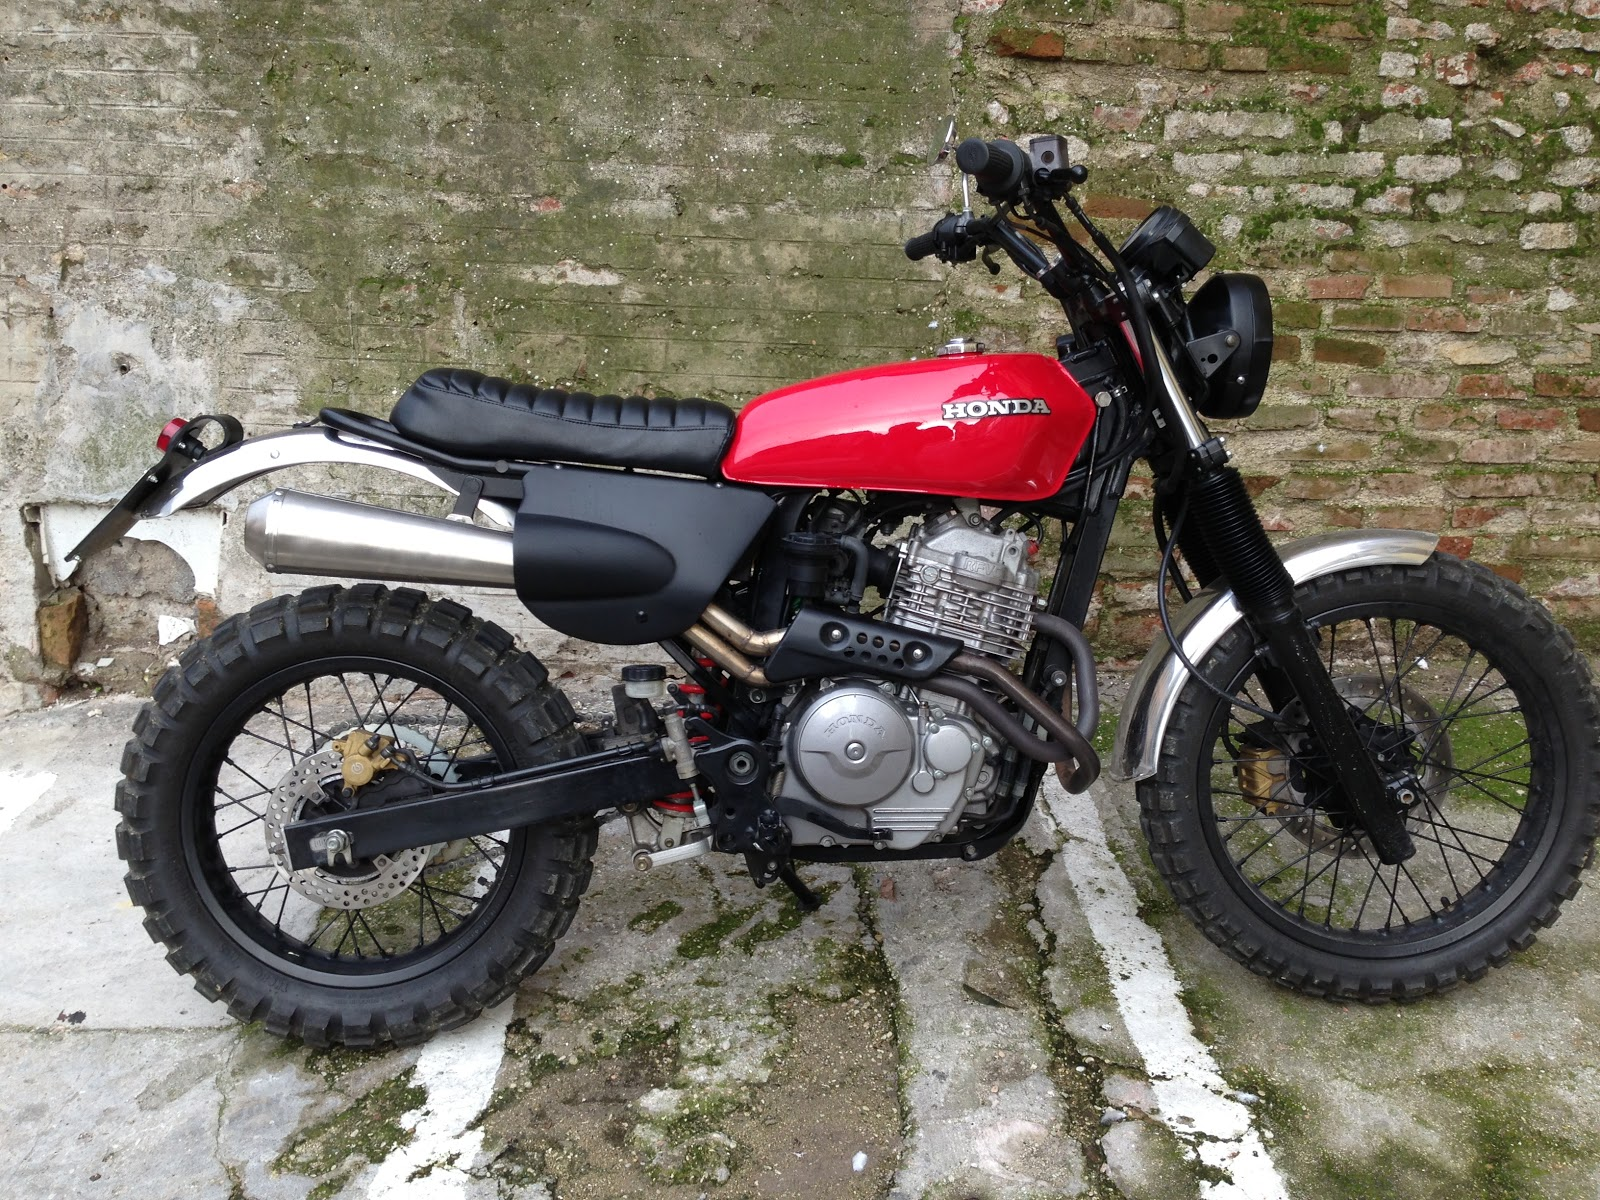 motorcycle 74 honda slr 650 scrambler. Black Bedroom Furniture Sets. Home Design Ideas